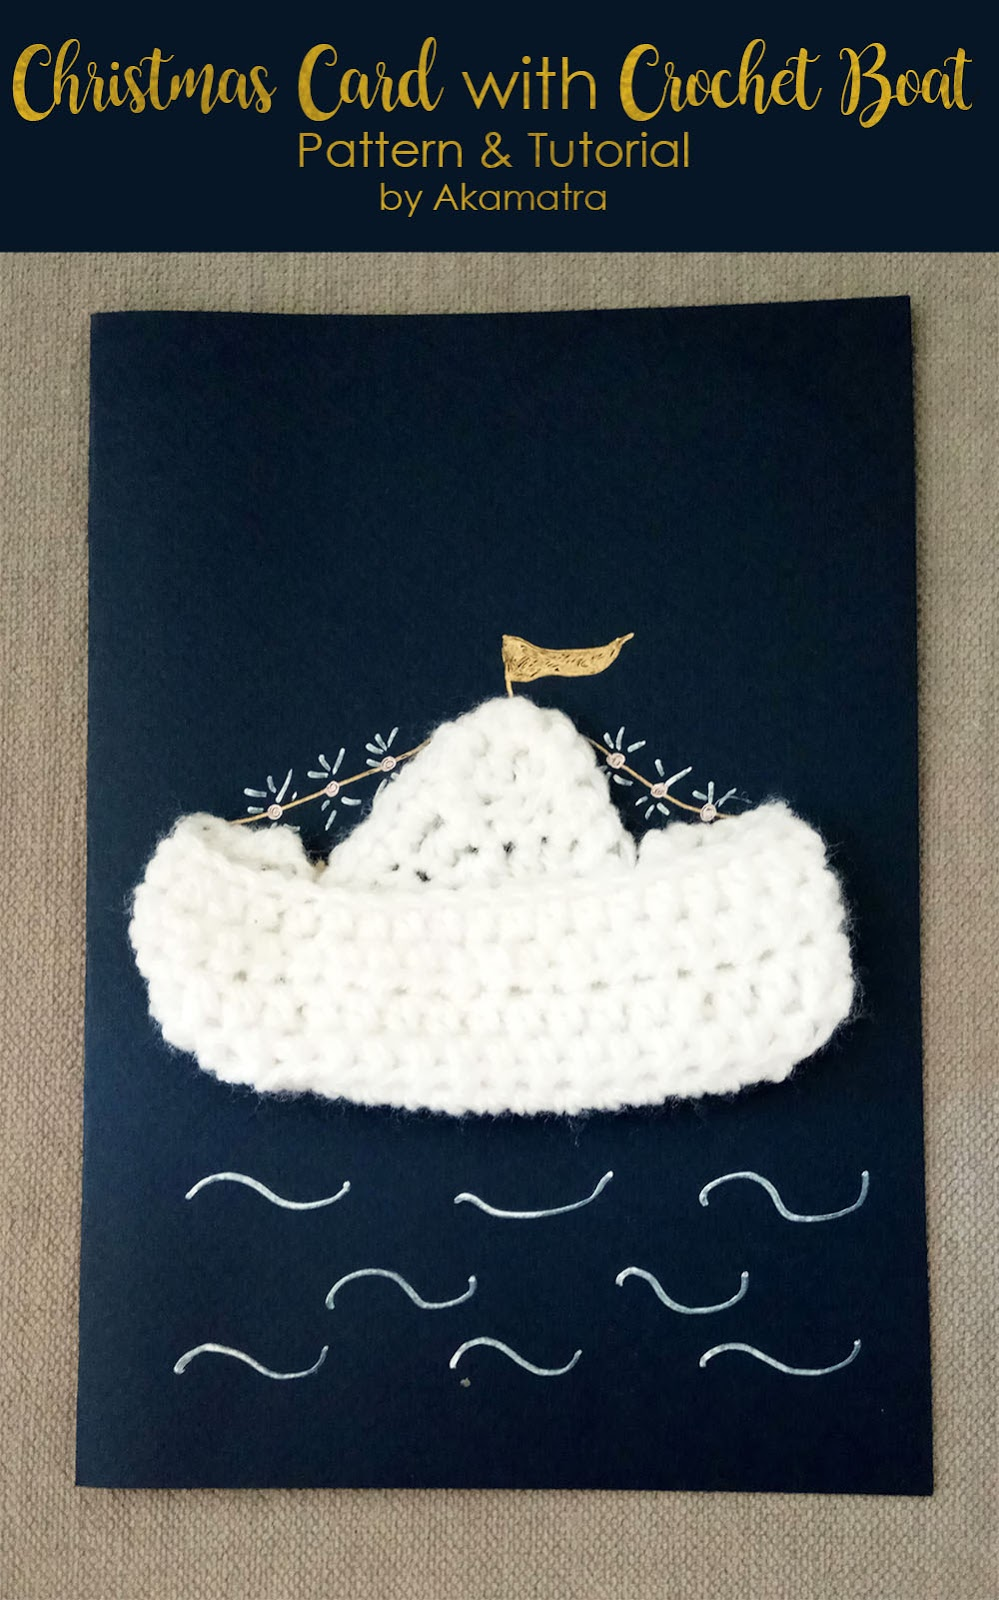 Diy christmas card with crochet boat free pattern and tutorial i am super happy to be part of an awesome group of italian and greek bloggers that teamed up to bring you an e book filled with tutorials to make your own dt1010fo